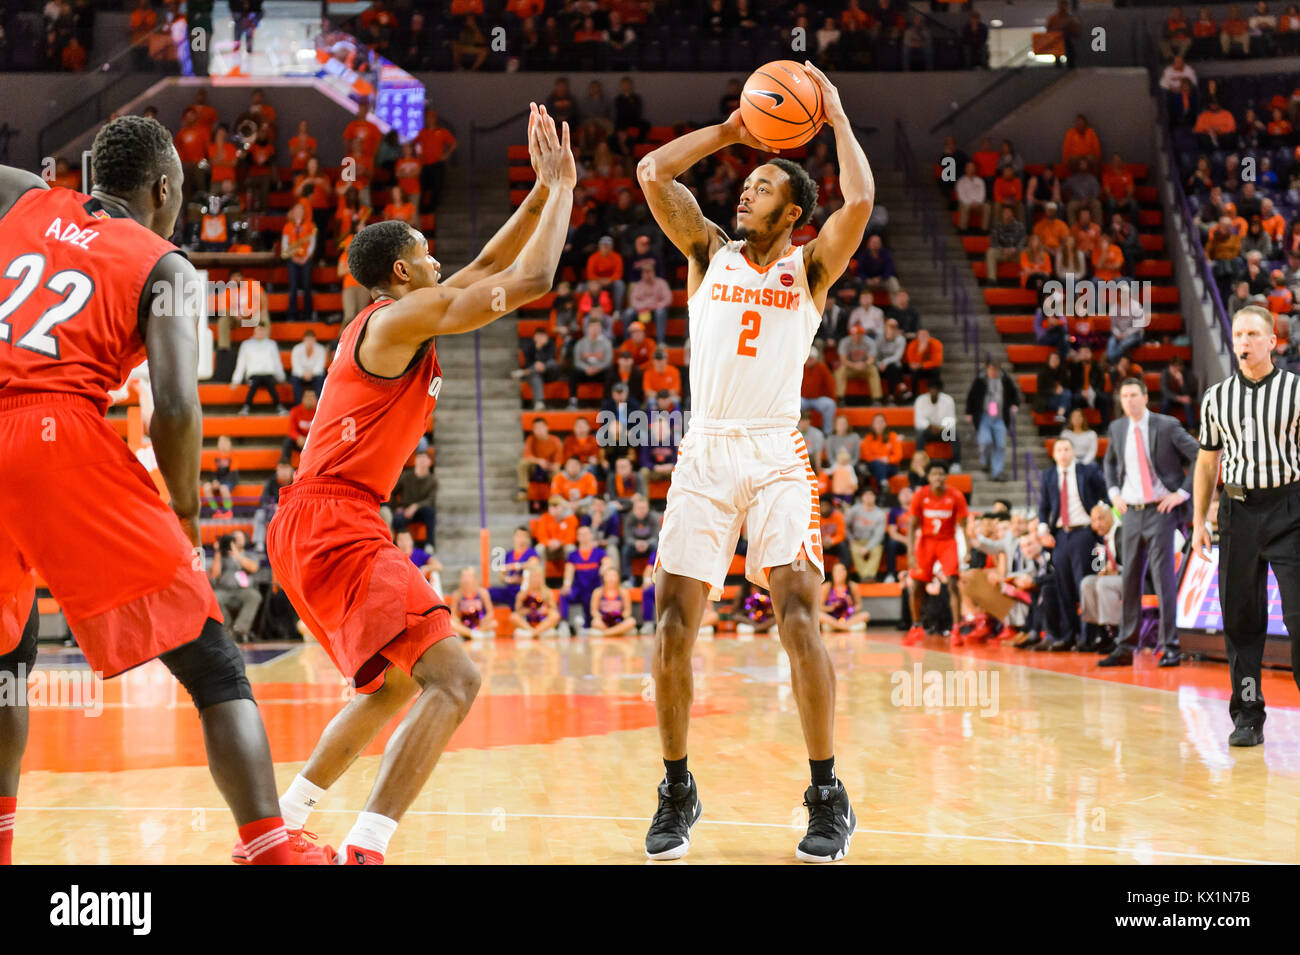 Clemson Tigers guard Marcquise Reed (2) shoots a jumpshot during 2nd half action of the NCAA basketball game between - Stock Image